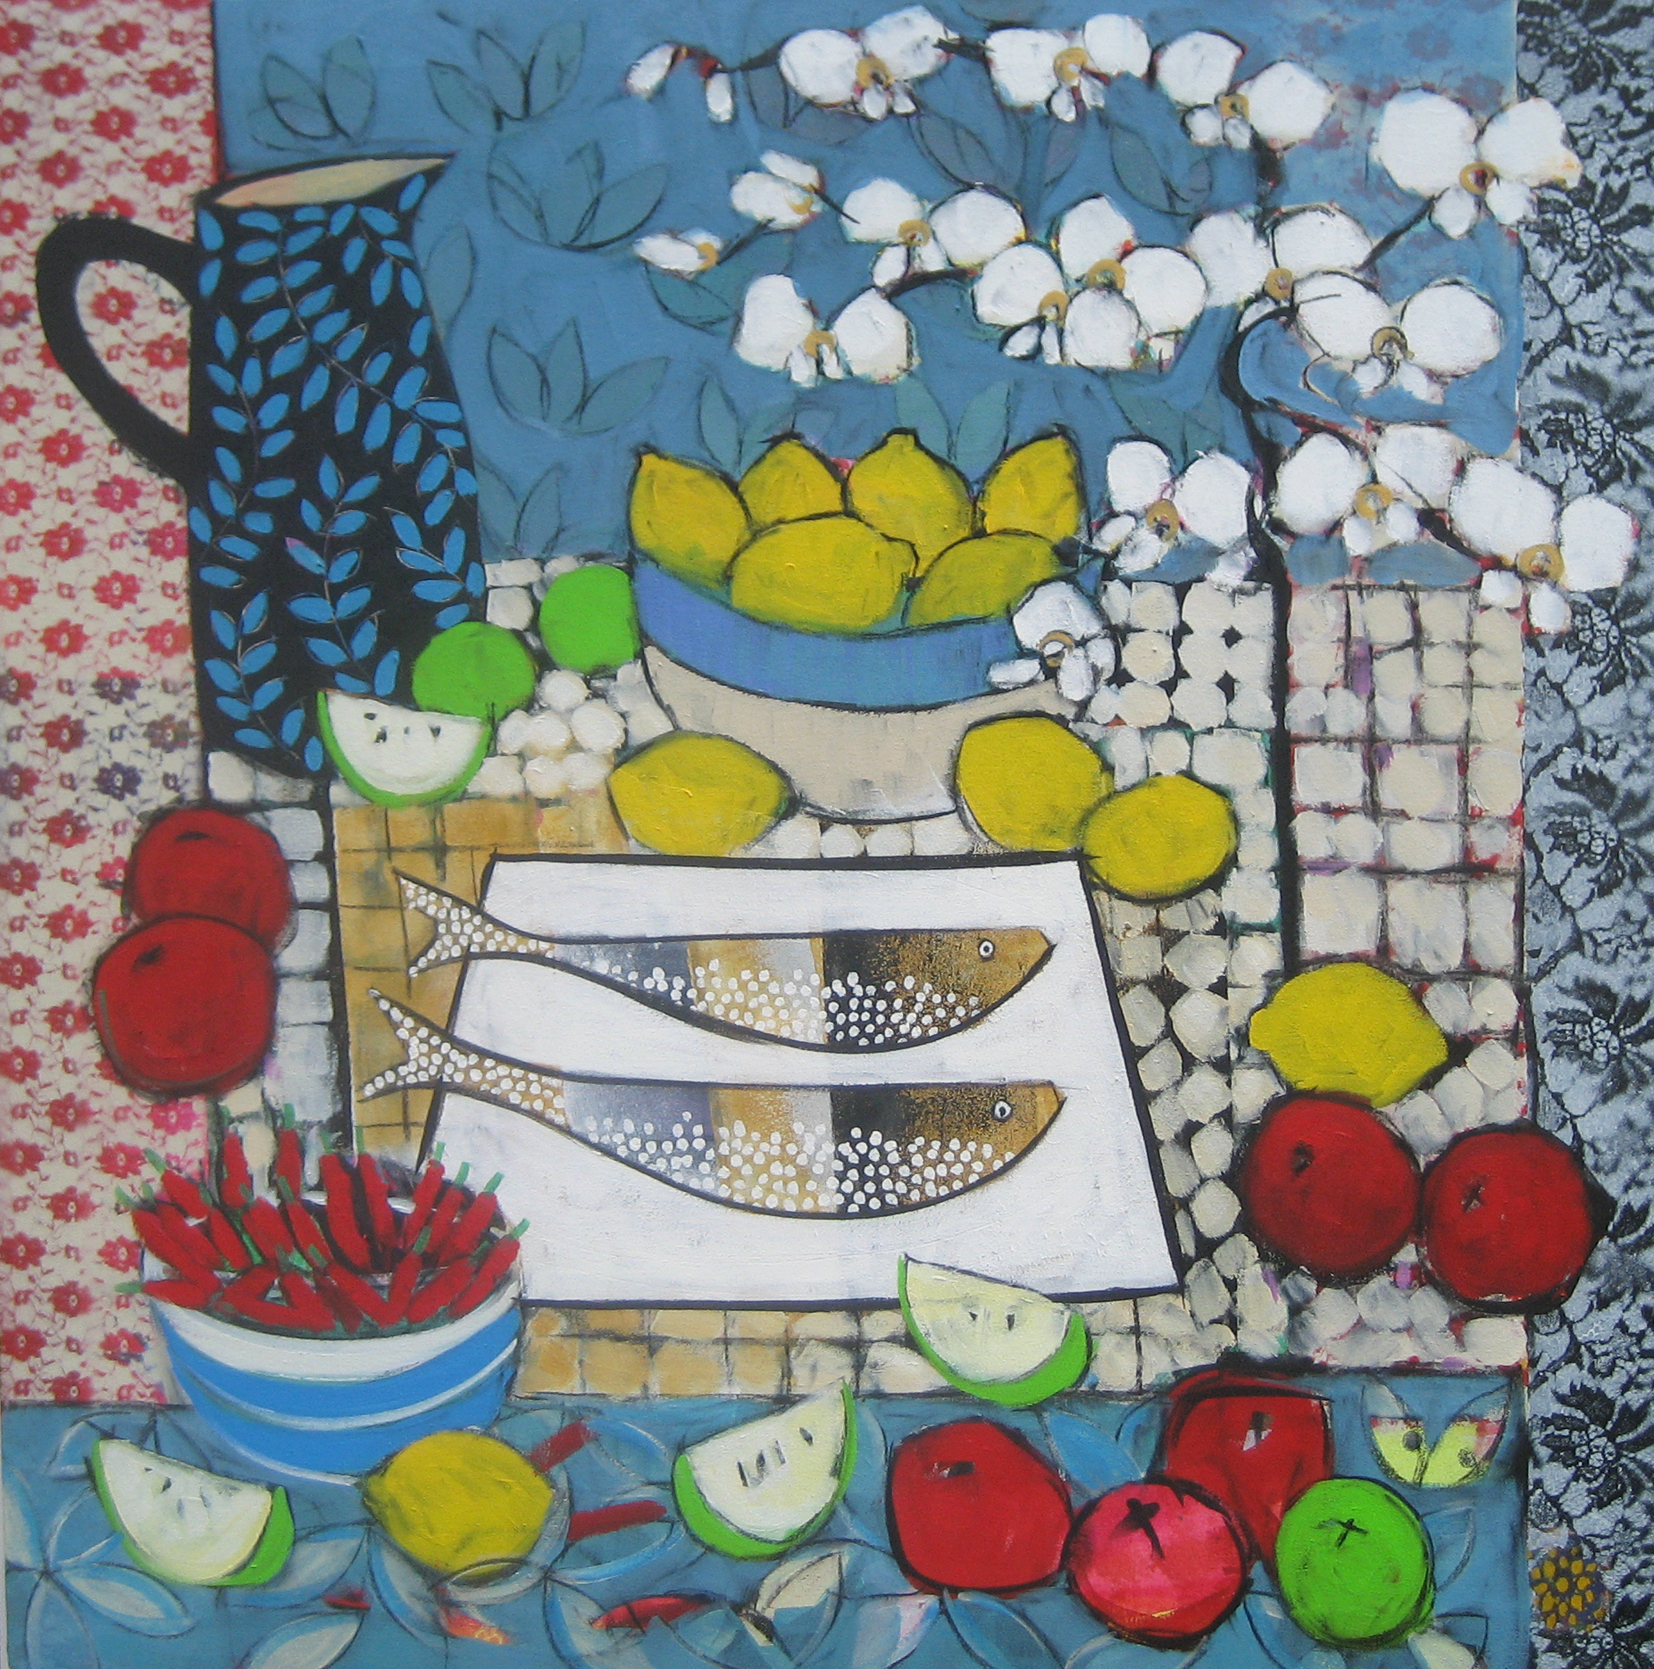 Still Life with Indian Fabric by Relton Marine at the Saffron Walden Gallery